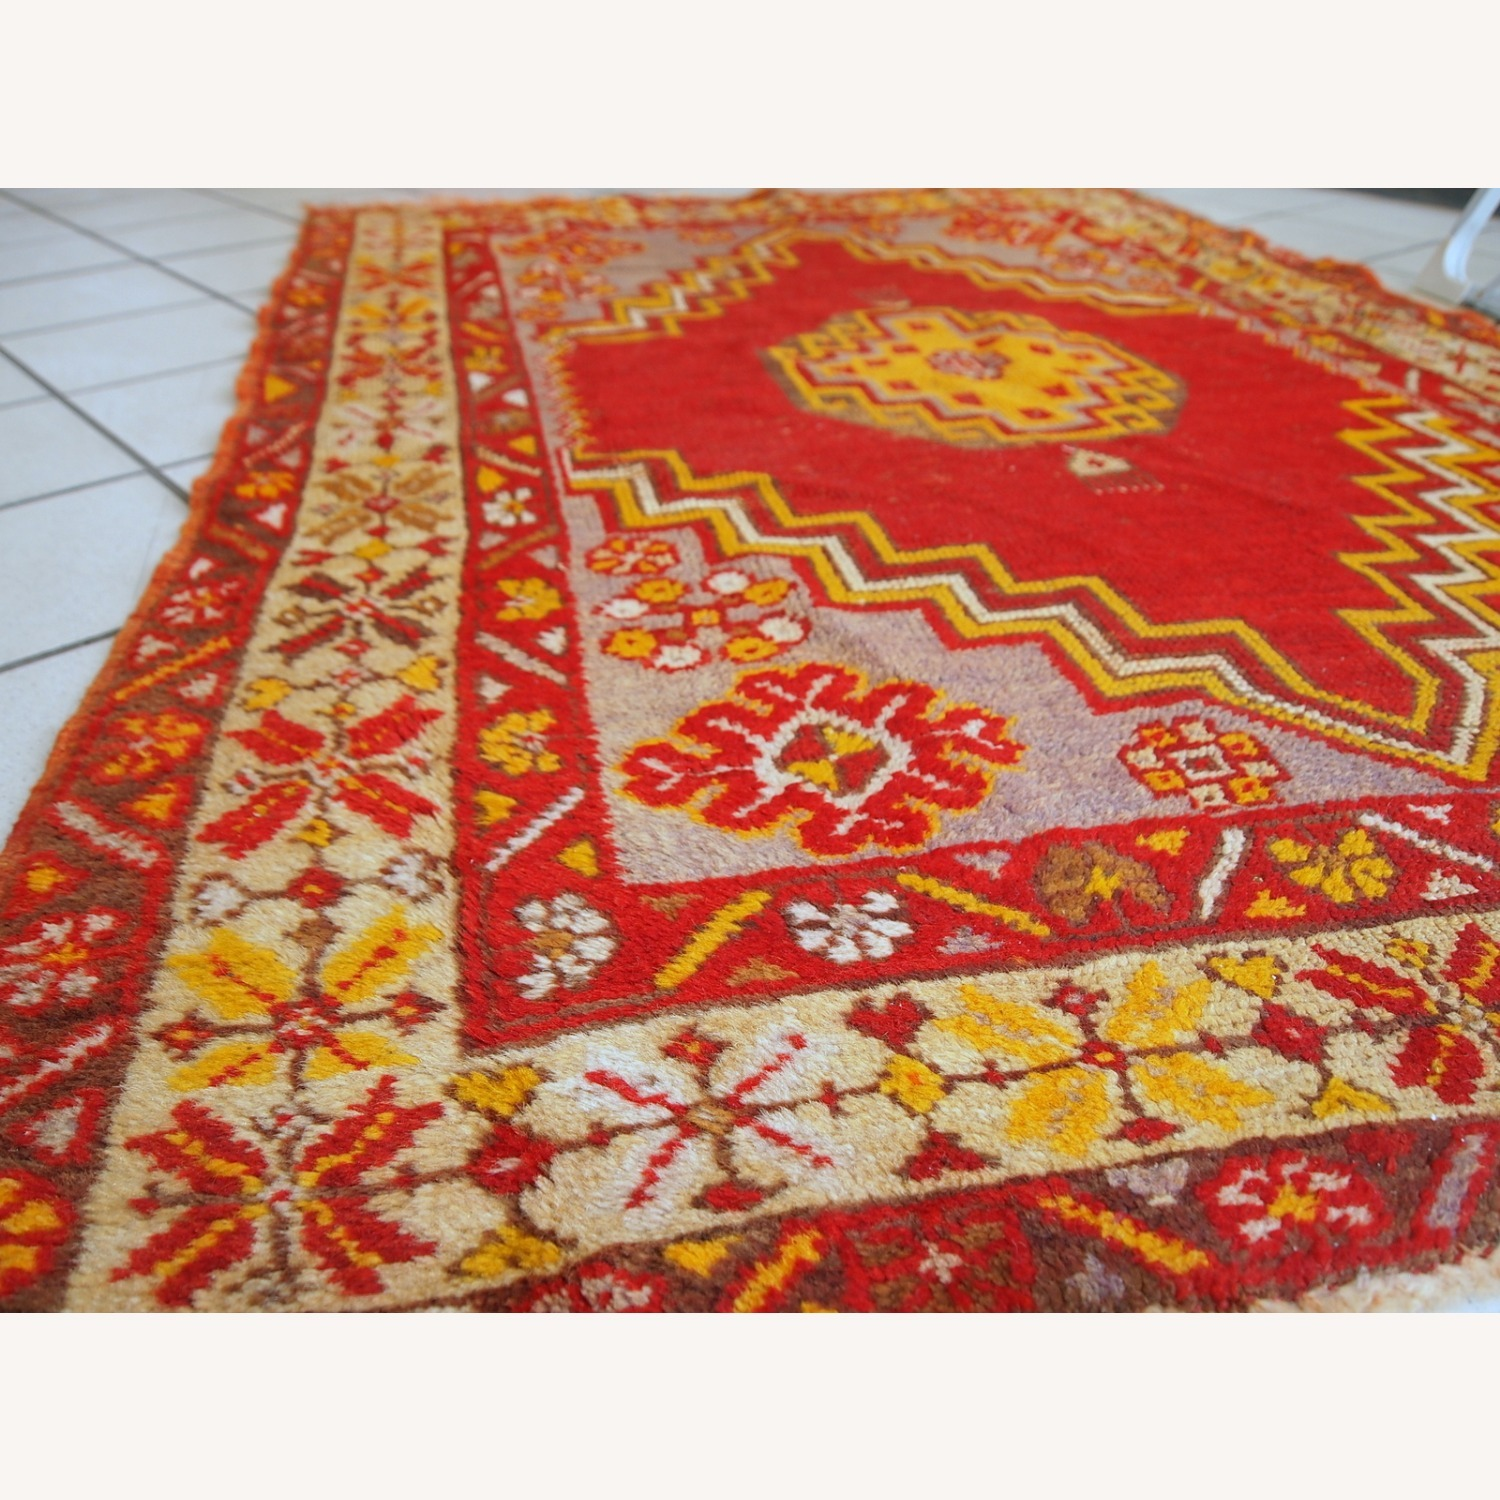 Handmade Antique Turkish Anatolian Rug - image-9